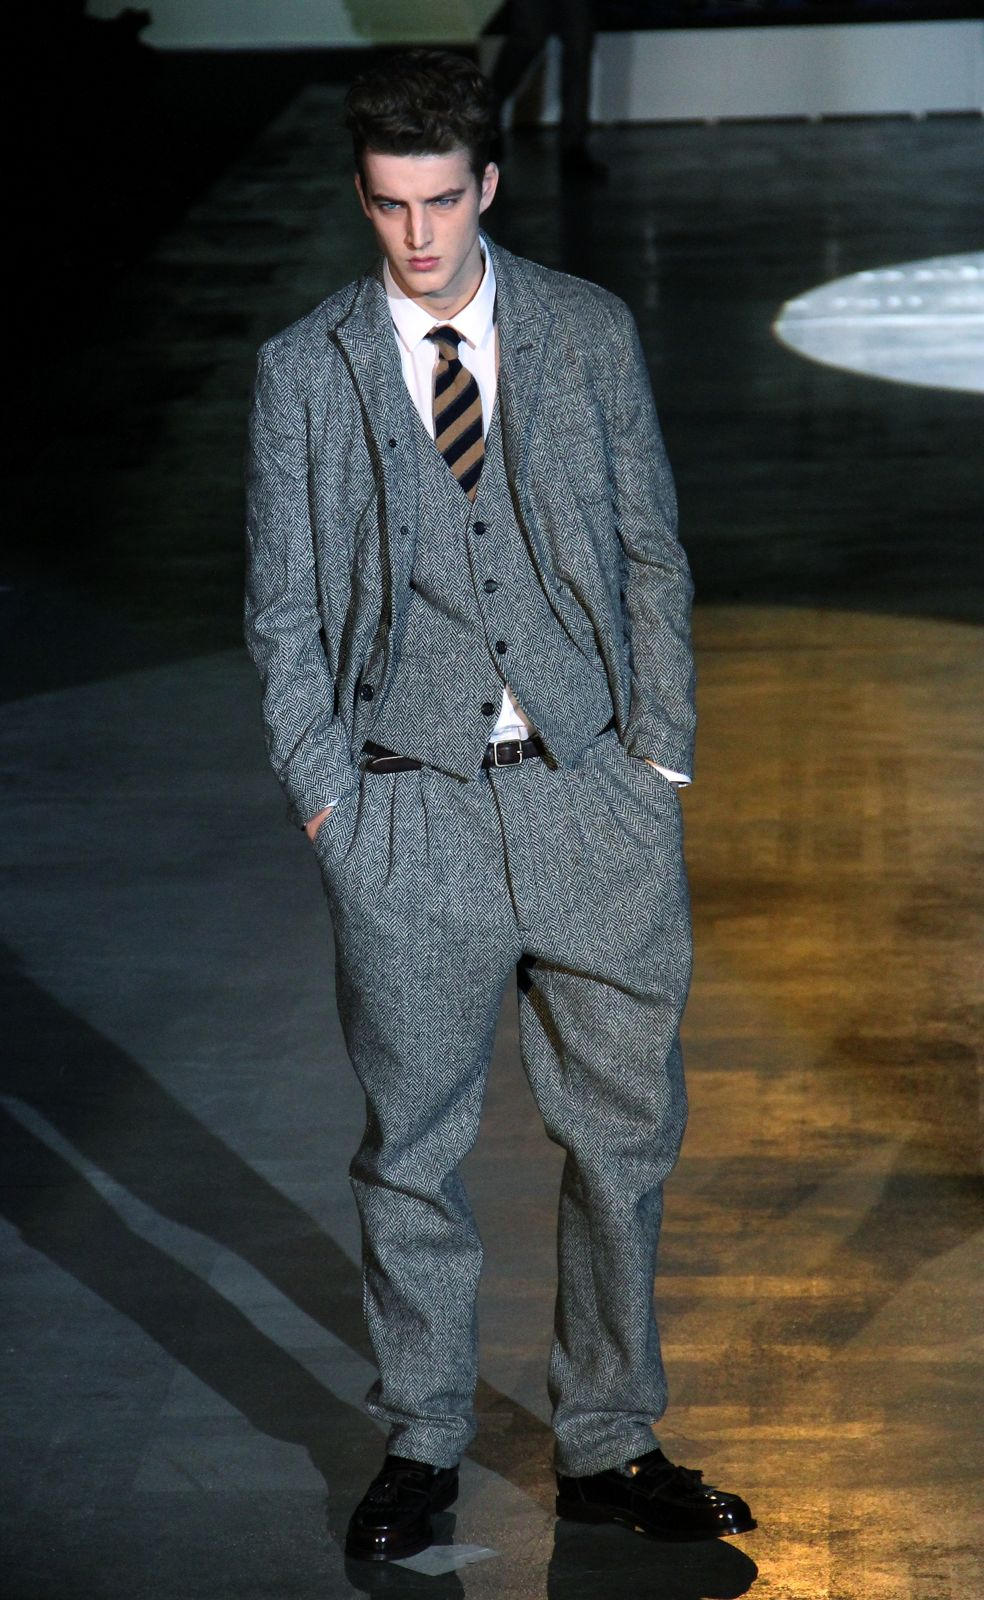 Iceberg Fall Winter 2012-13 Men's Collection Milano Fashion Week